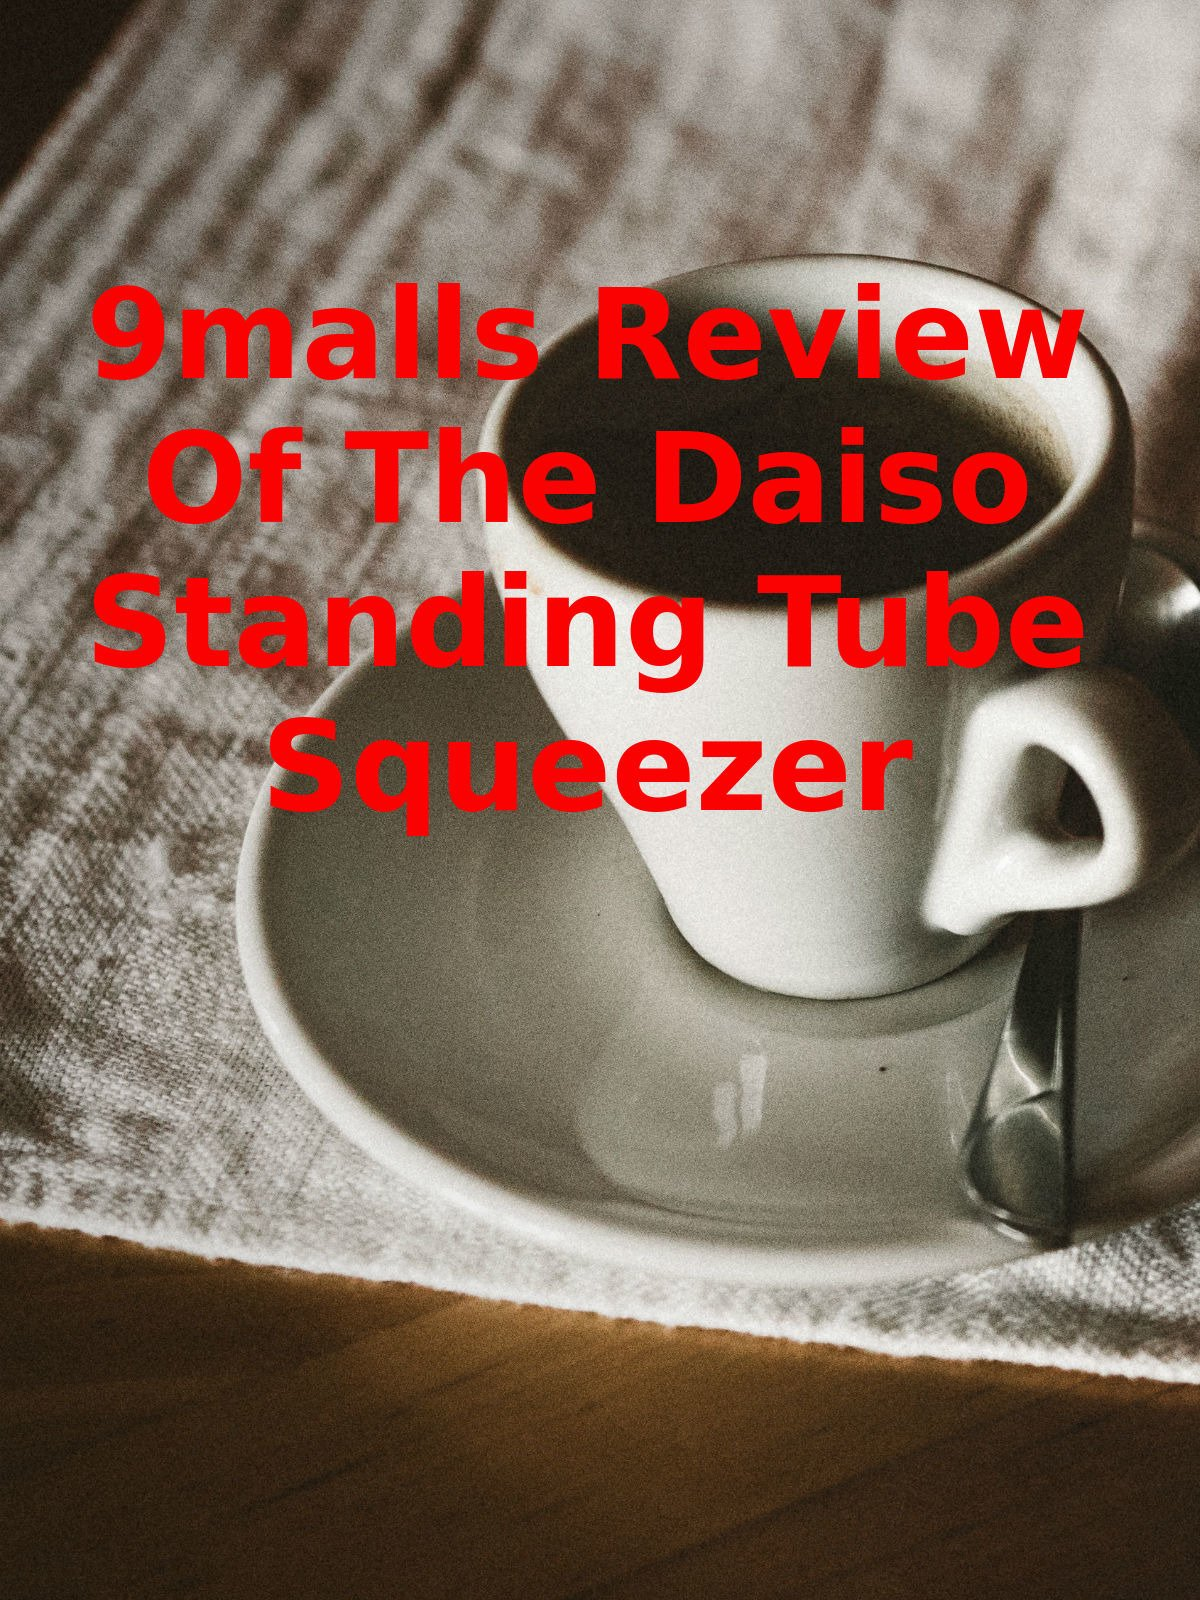 Review: 9malls Review Of The Daiso Standing Tube Squeezer